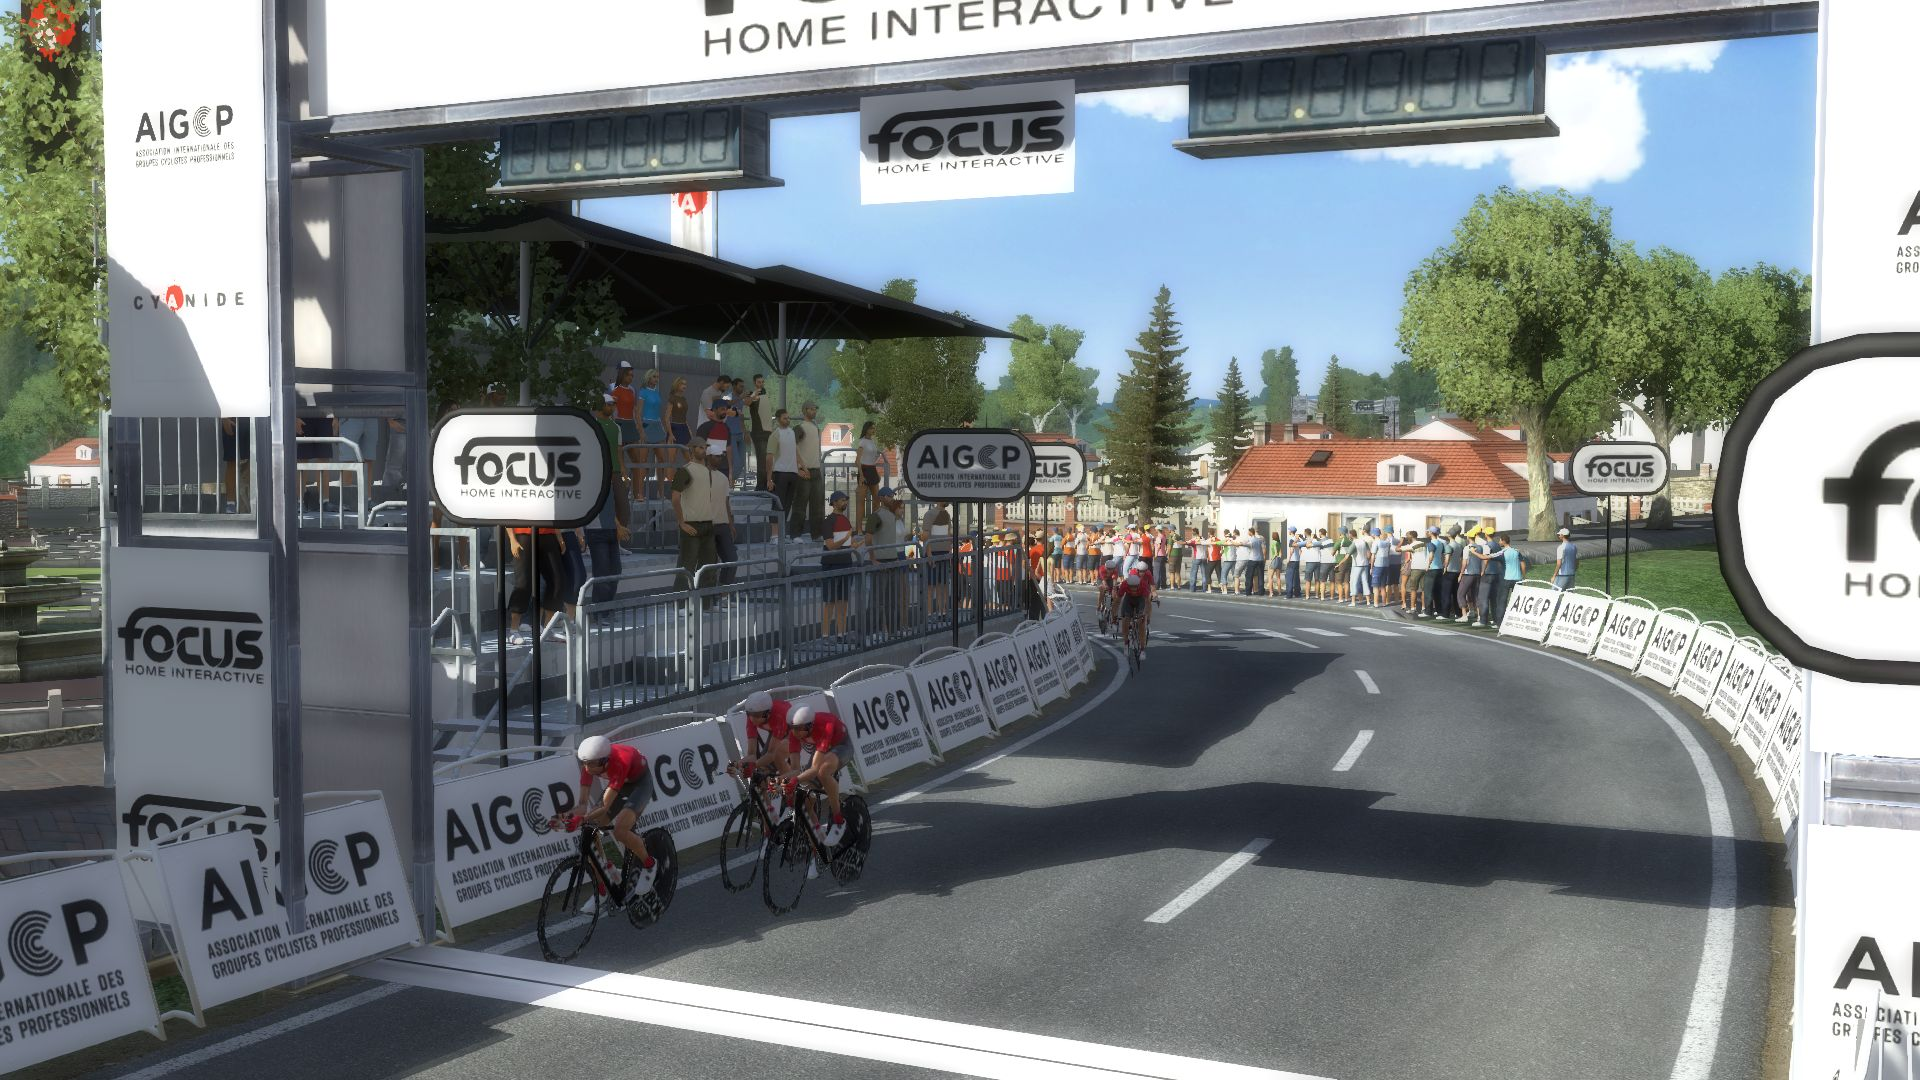 pcmdaily.com/images/mg/2019/Races/HC/Slovenie/mg19_slo_s01_18.jpg